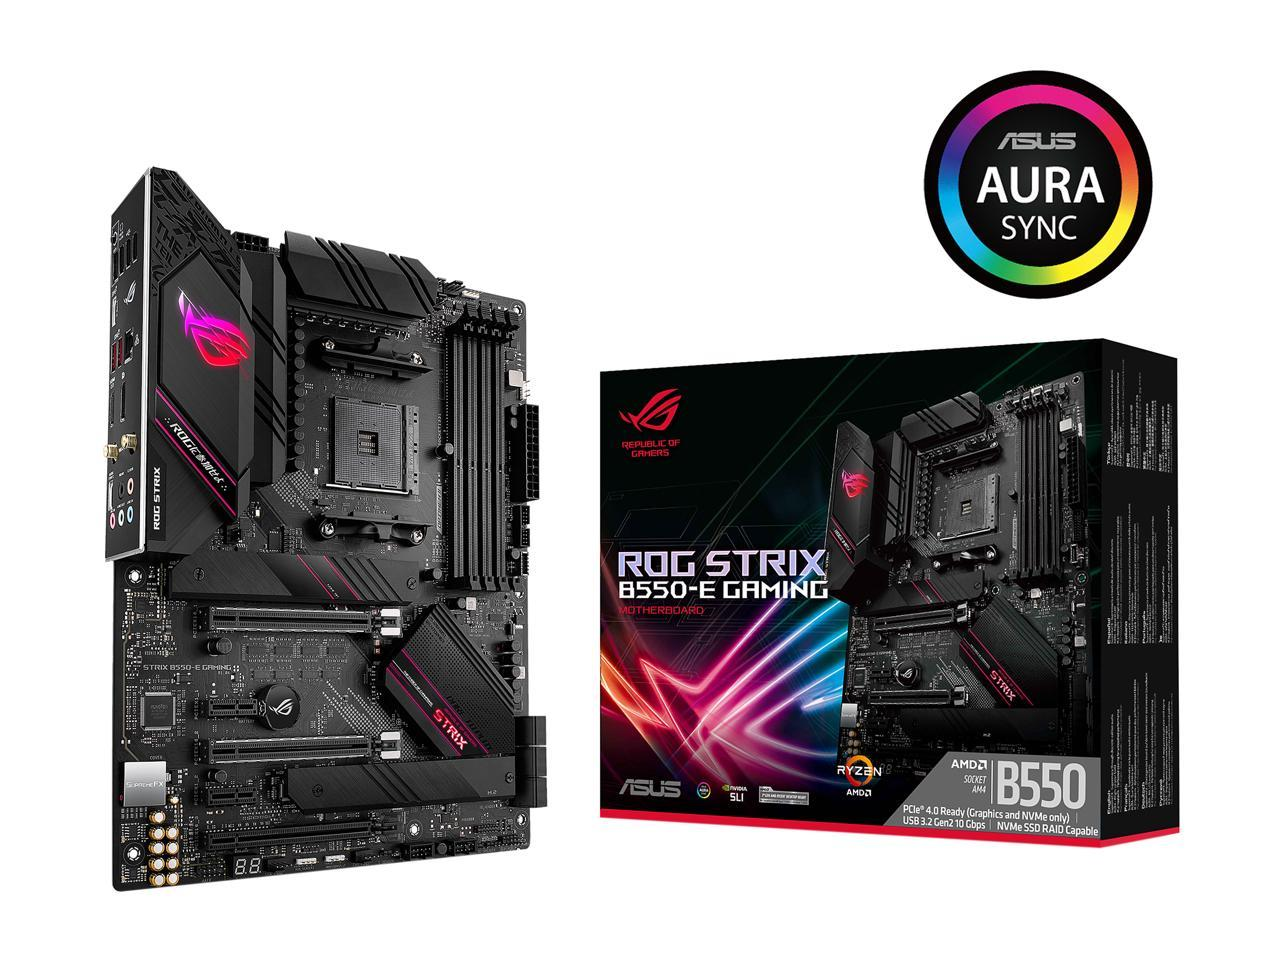 ASUS ROG Strix B550-E GAMING Motherboard